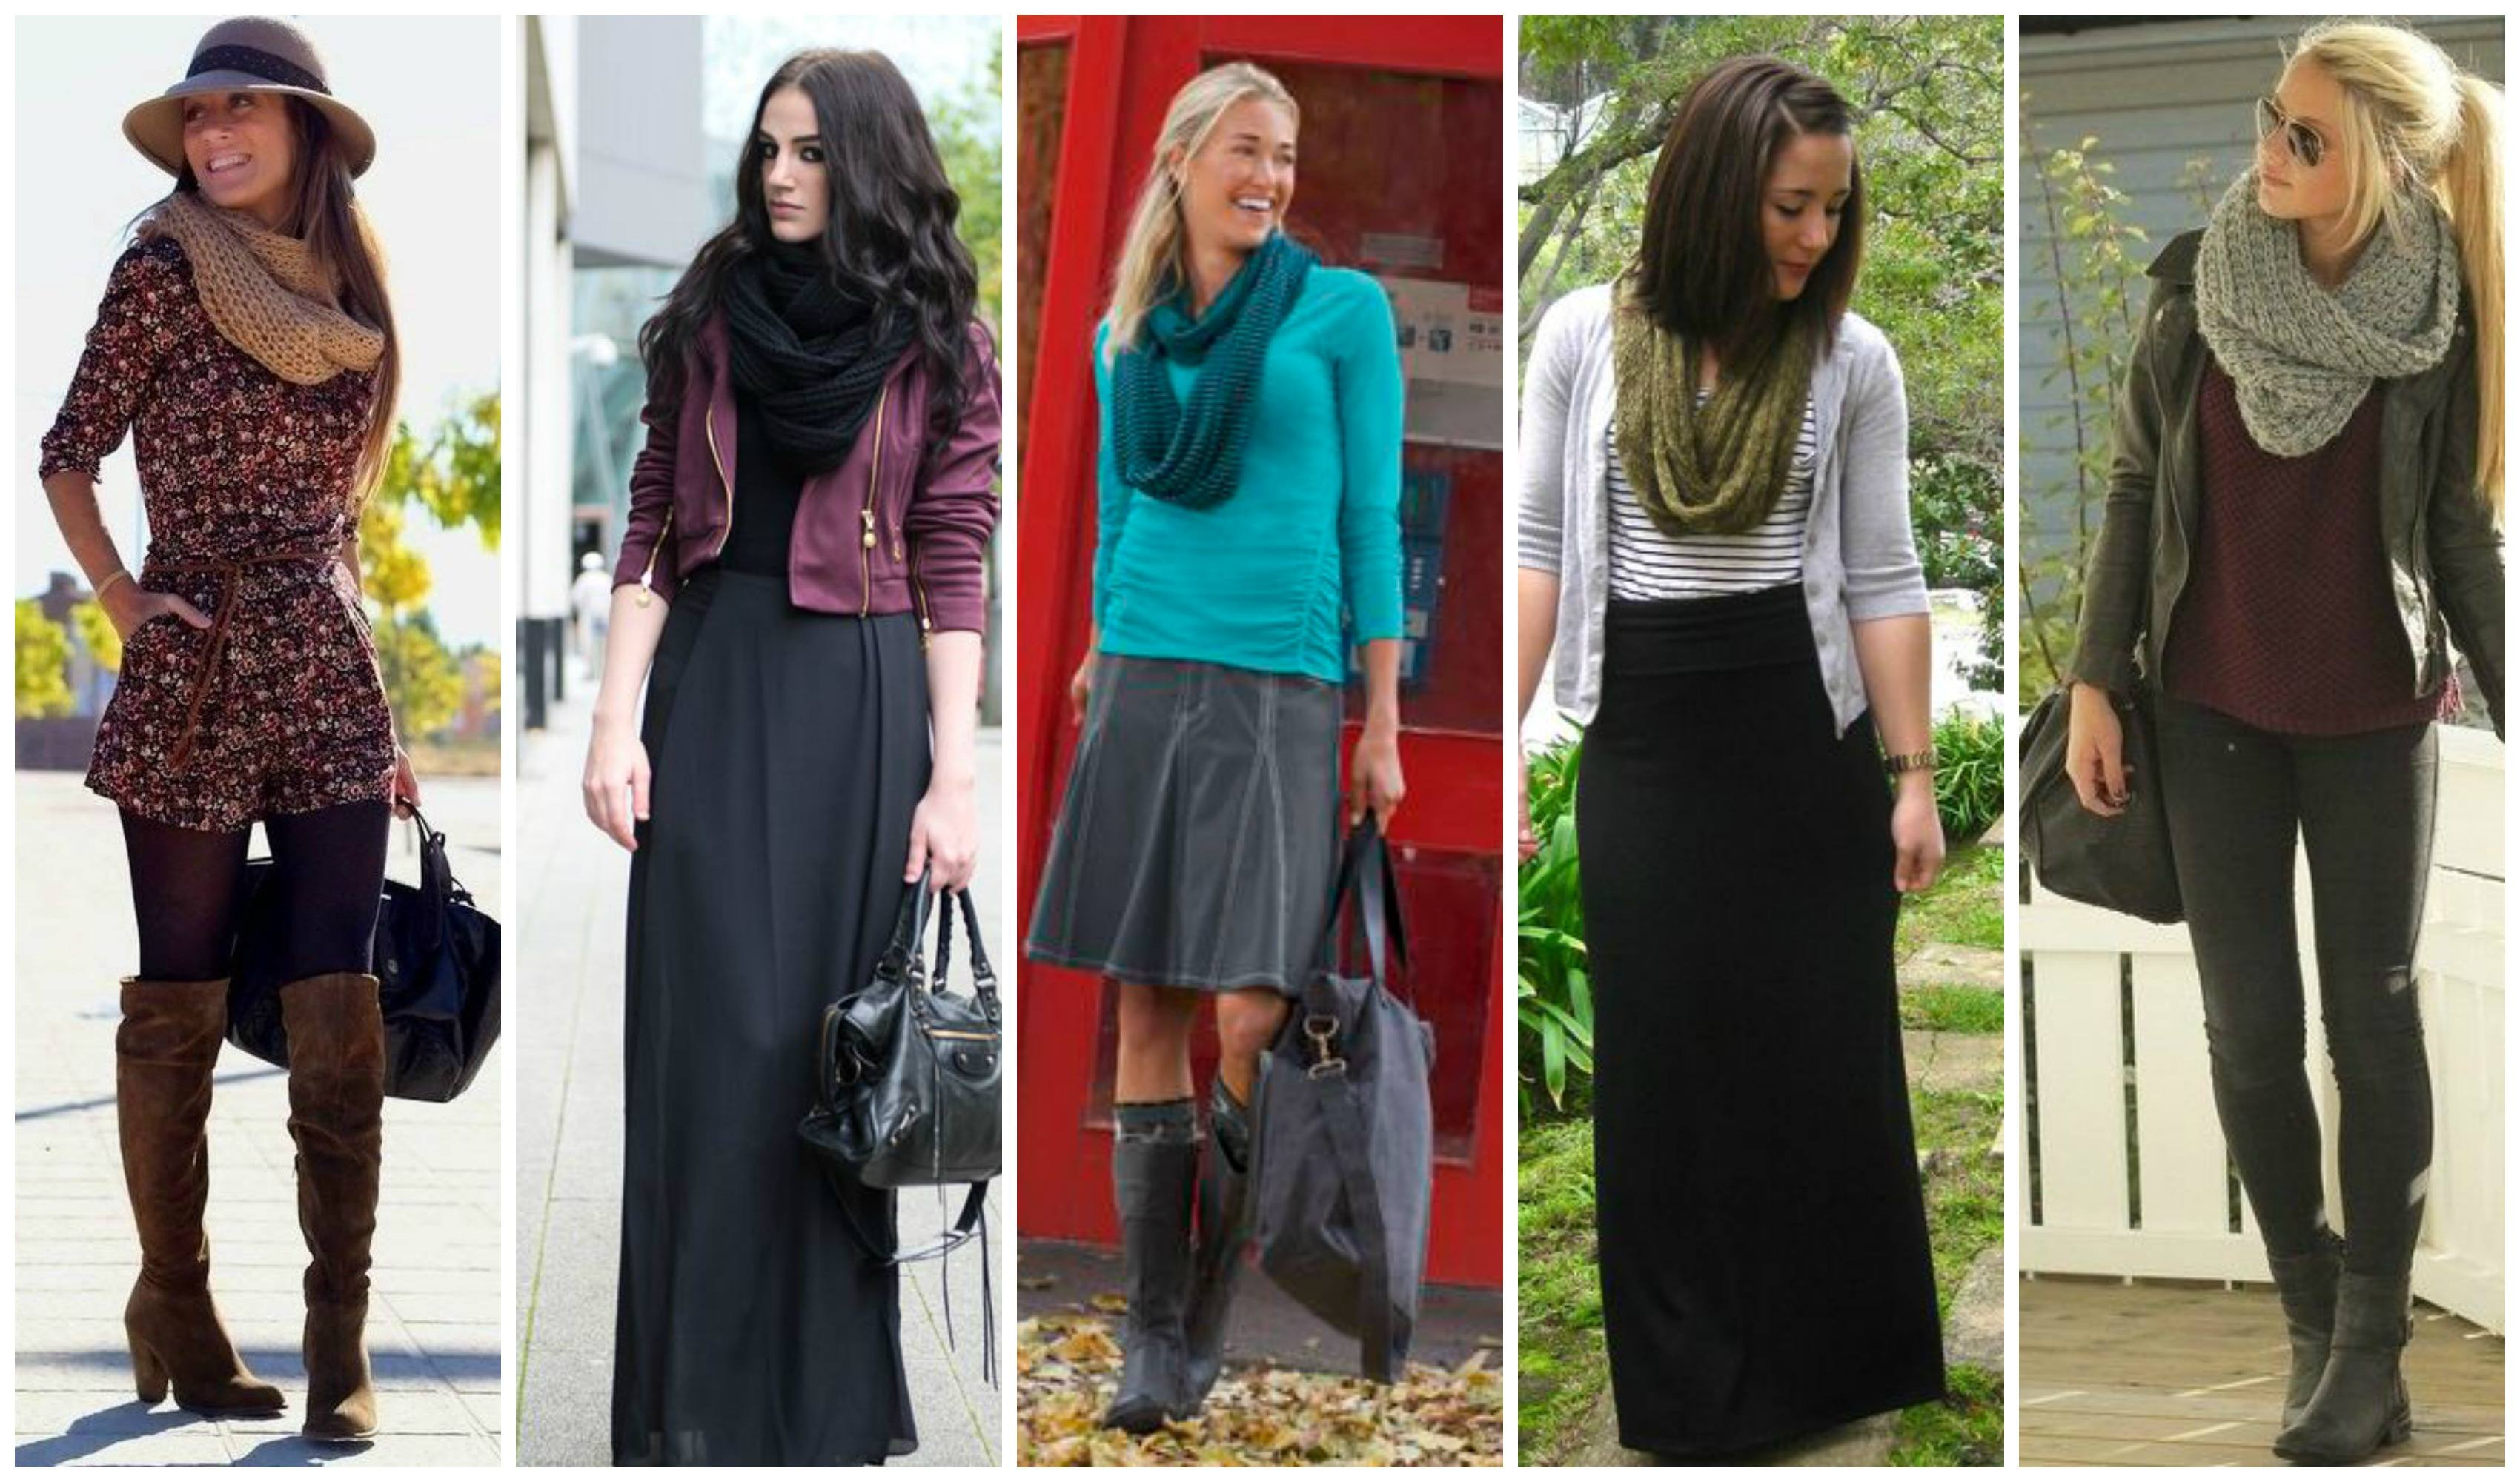 infinity-scarf-outfit-ideas Outfits with Scarves-18 Chic Ways to Wear Scarves for Girls